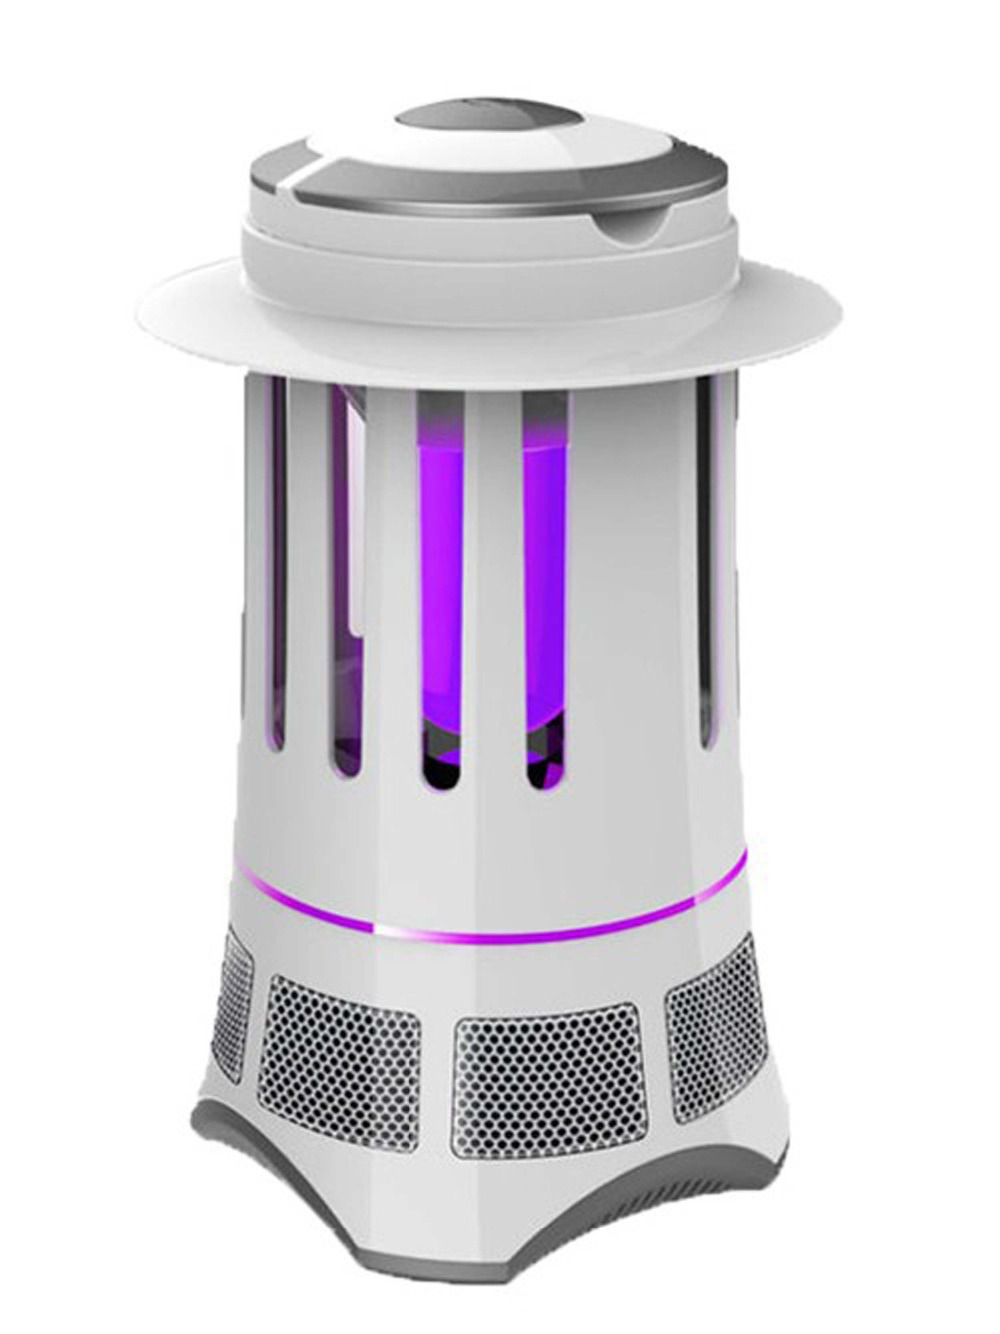 Mosquito Killer Lamp Outdoor Indoor Safety UV Electric Photocatalyst Mosquito Repellent Insect Repeller Control Lamp Pest